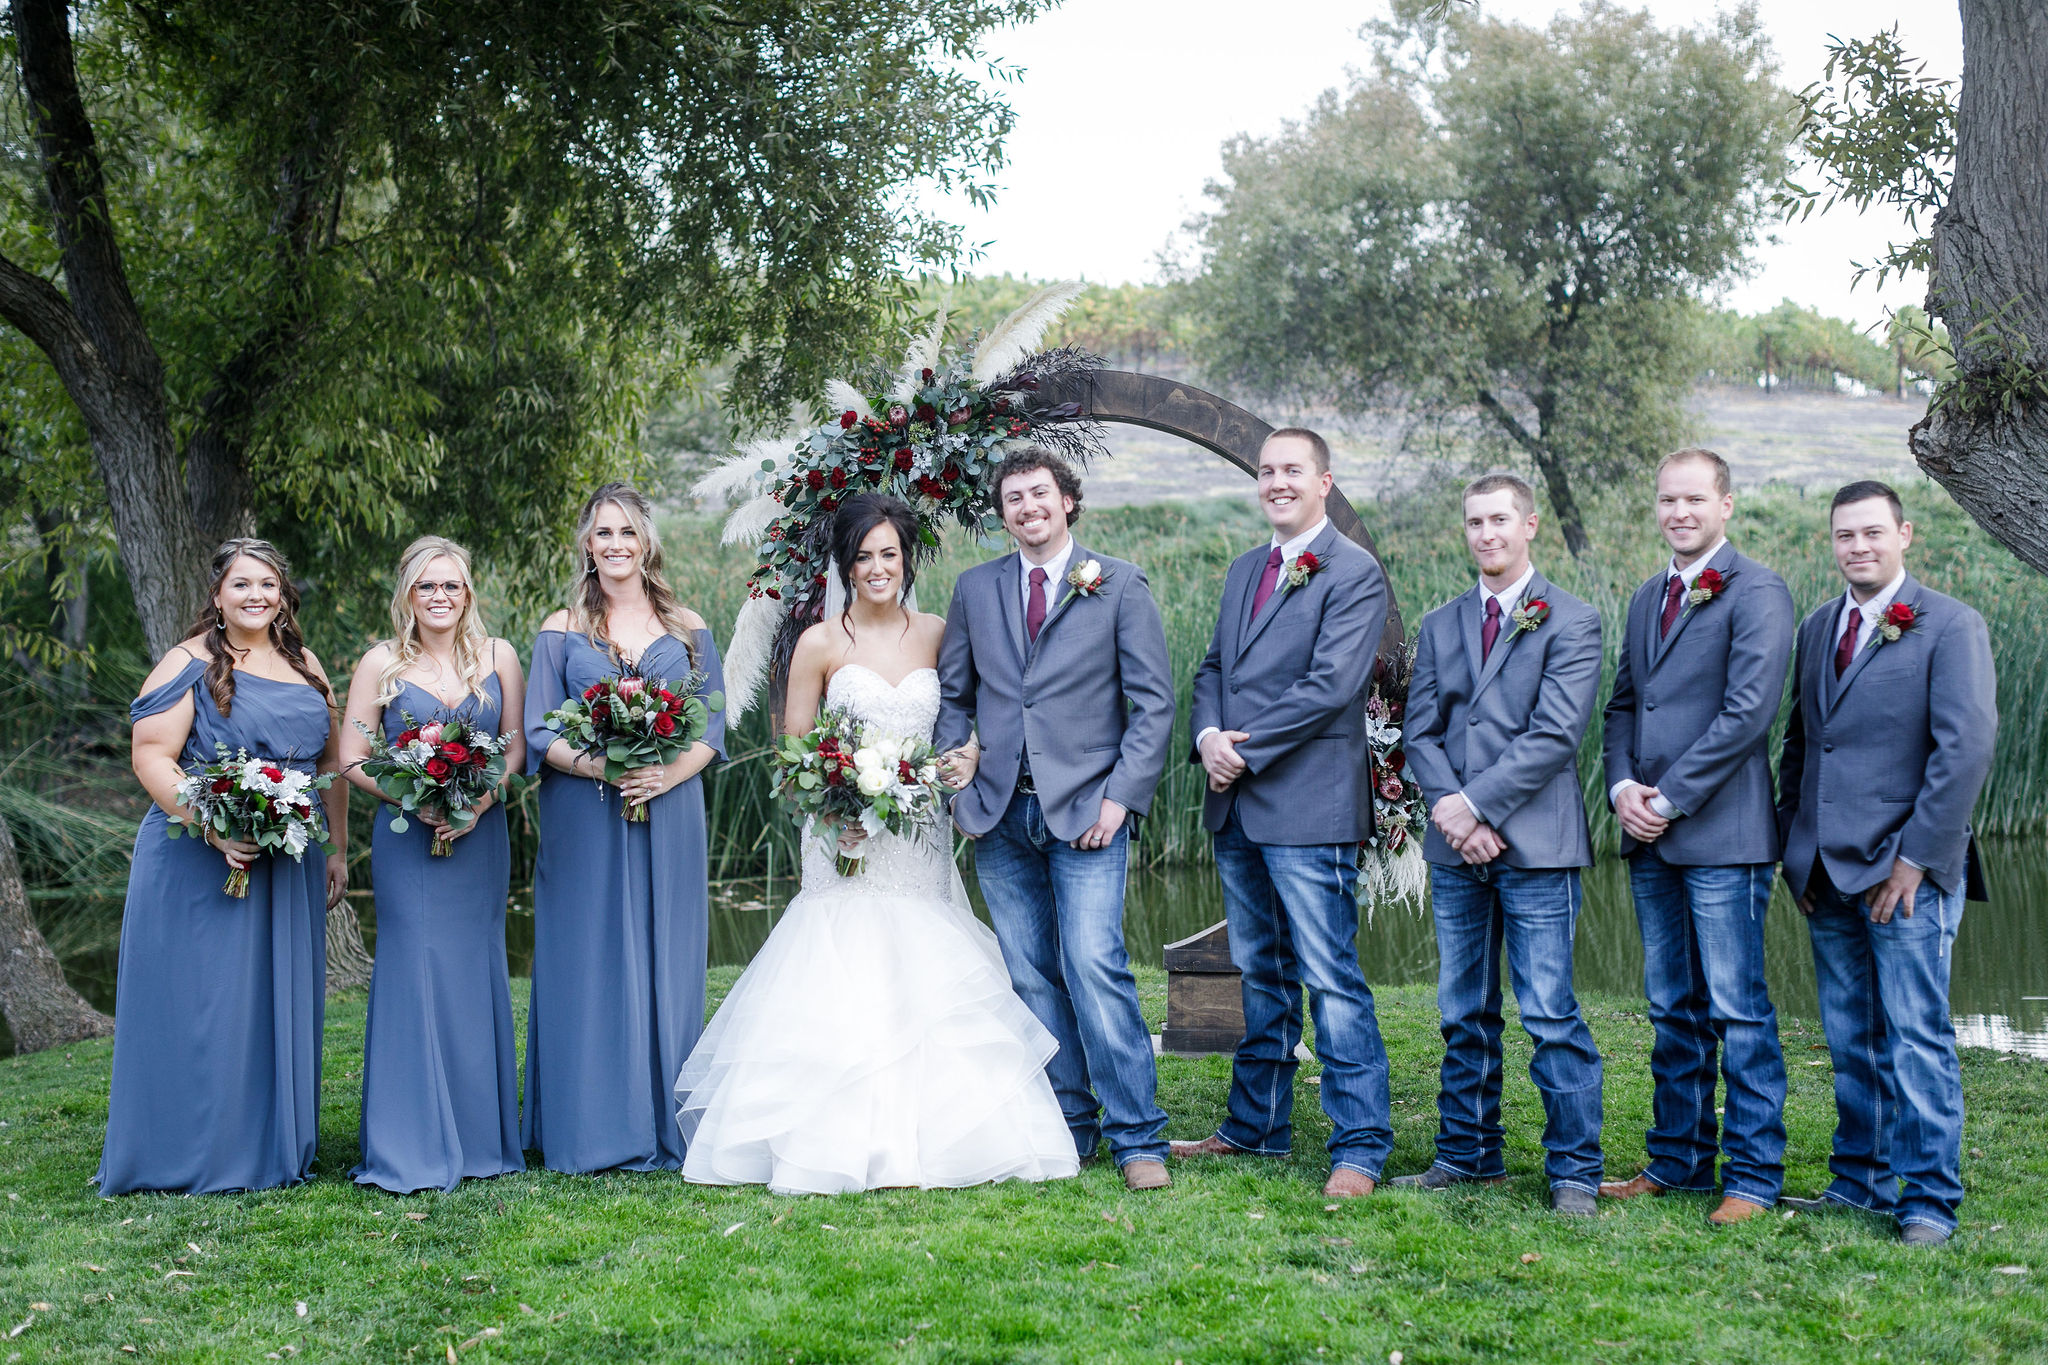 www.santabarbarawedding.com | Kiel Rucker | Greengate Ranch | Kramer Events | De La Fleur Flowers | Couple with Bridal Party